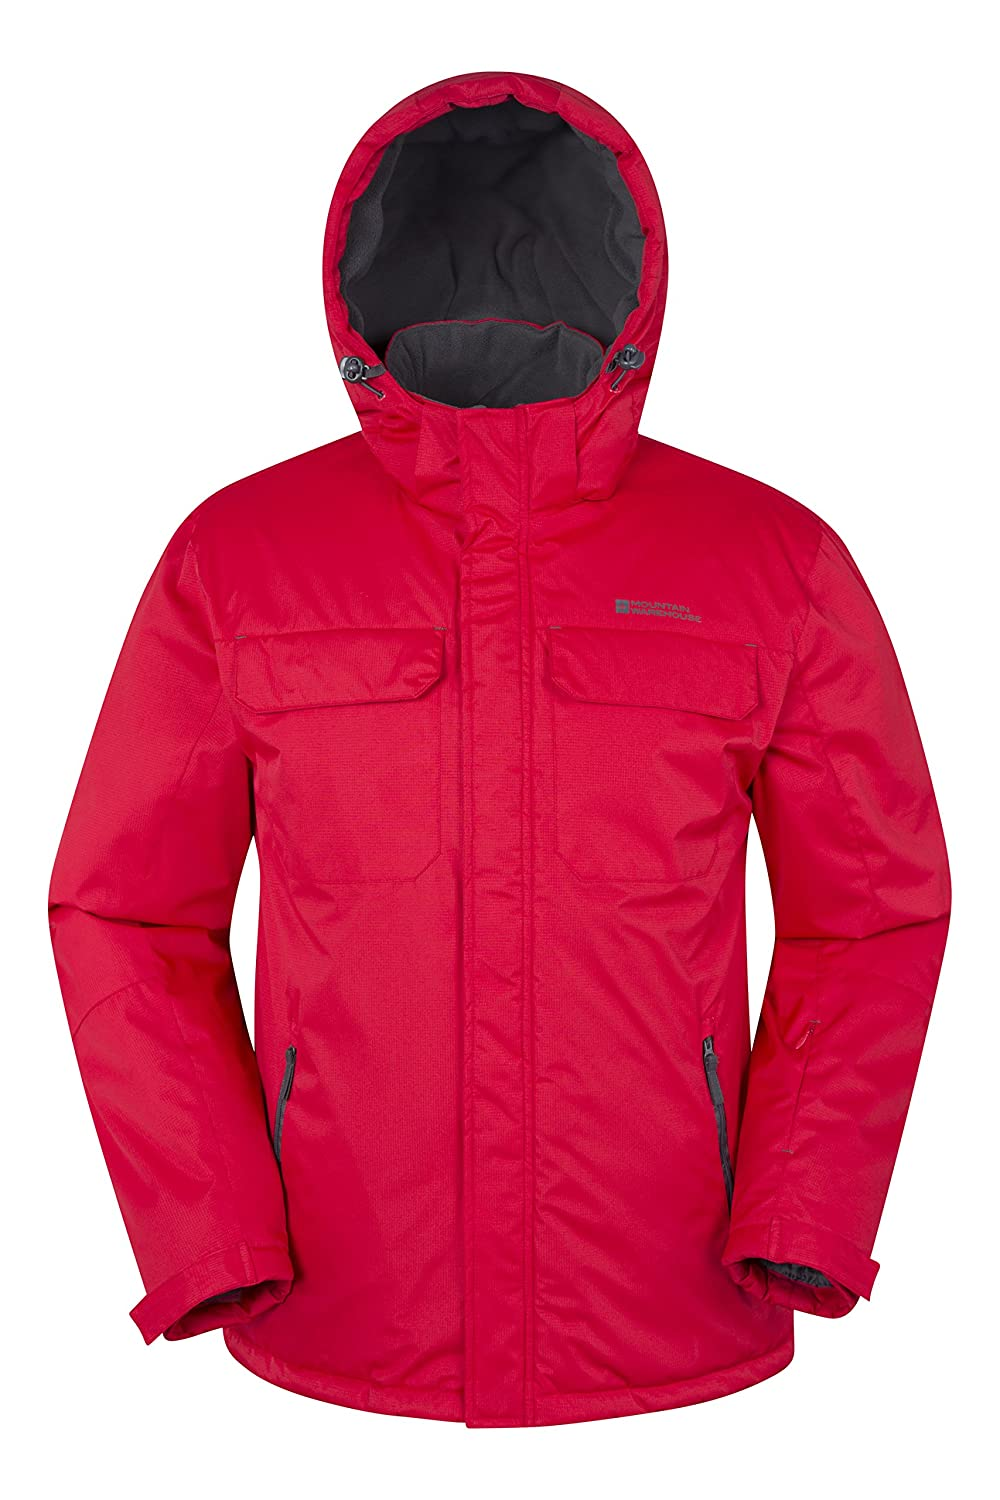 Mountain Warehouse Eclipse Men's Ski Jacket - Snow Proof, Ripstop, Water Repellent, Fleece Lining for Extra Warmth & Comfort with Detachable Hood - Ideal for Beginners